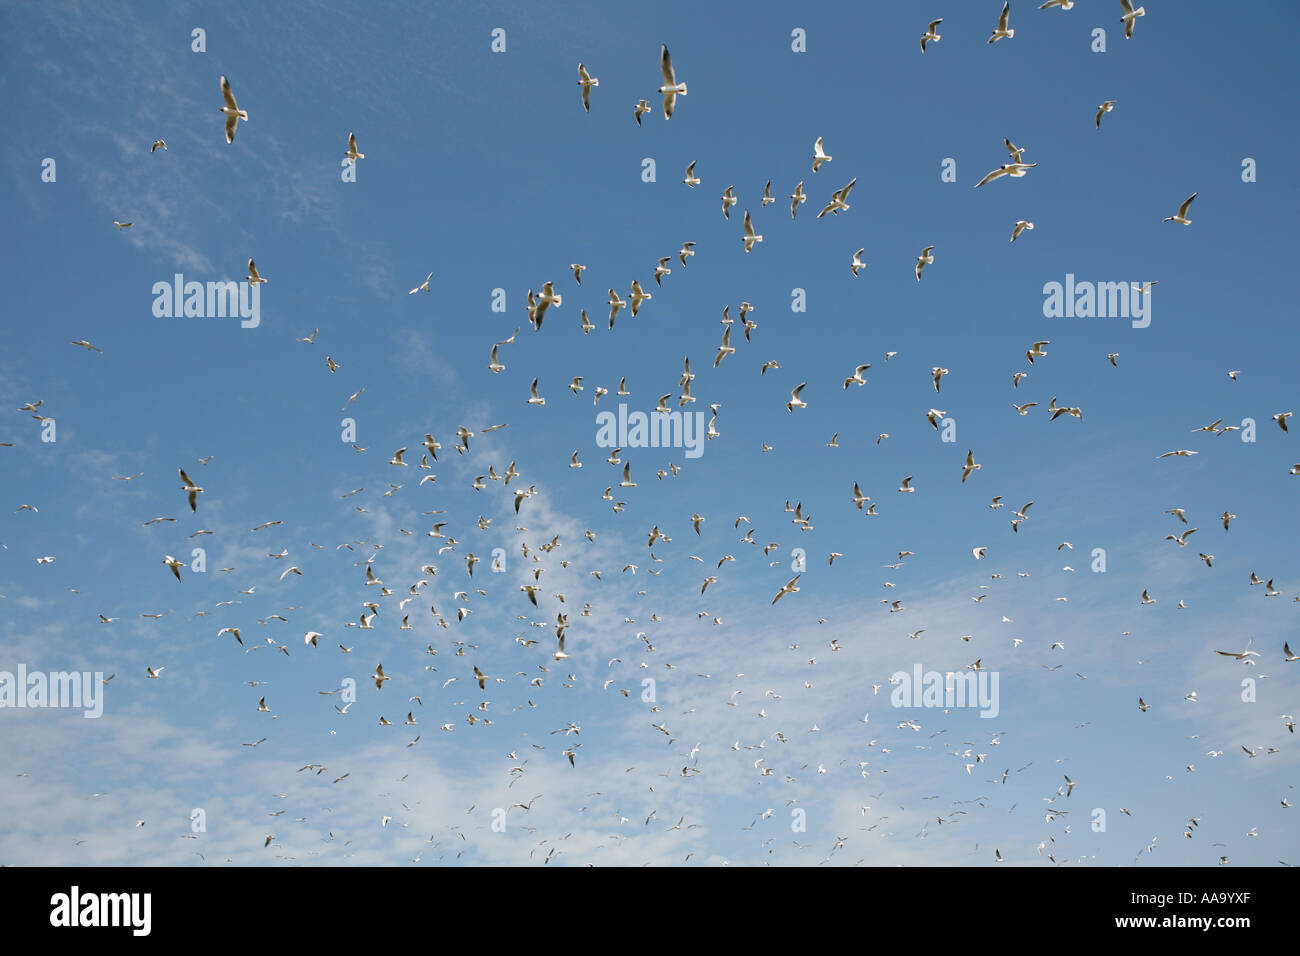 Huge flog of gulls in the air - Stock Image